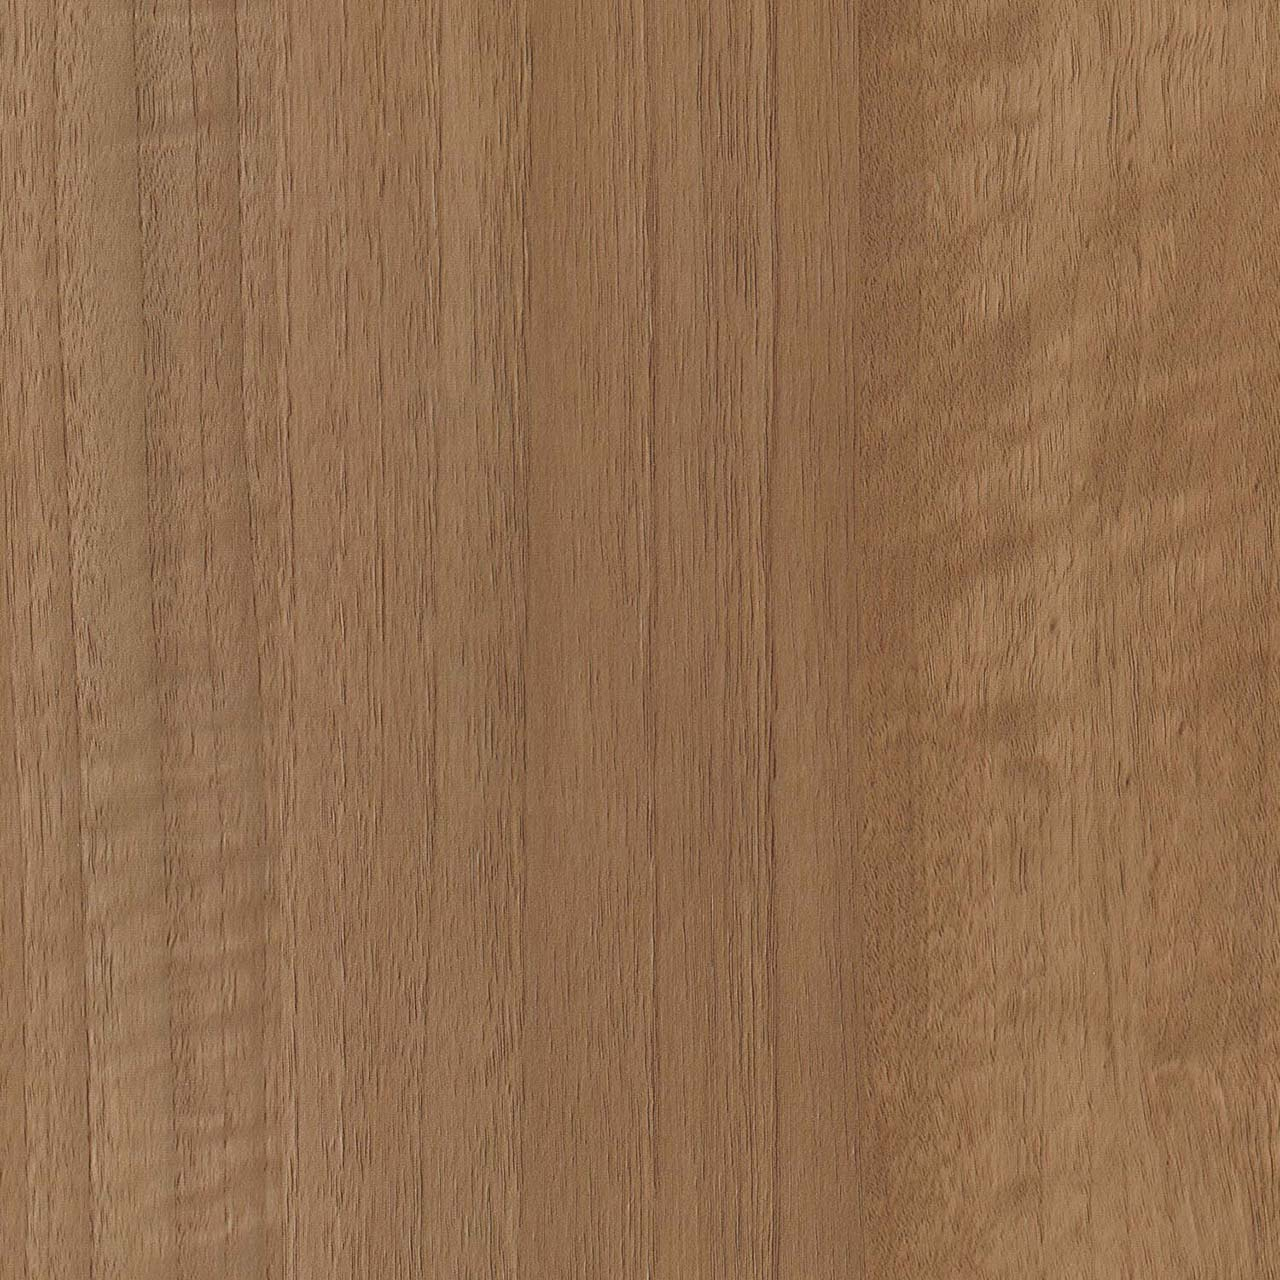 French Walnut effect laminate panel